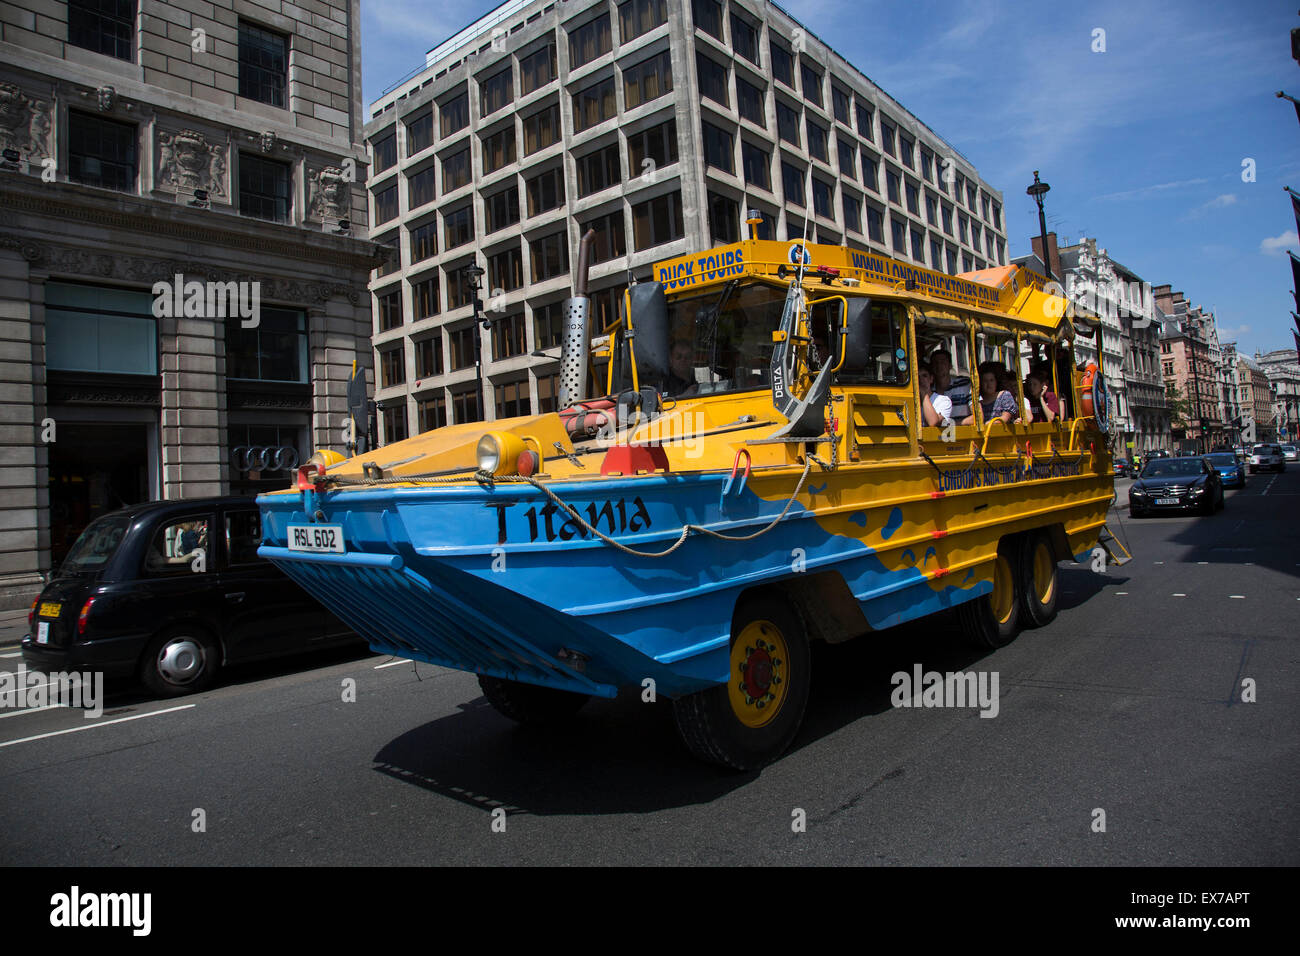 Summertime in London, England, UK. Duck Tours London amphibious vehicle passing along Piccadilly in the West End - Stock Image